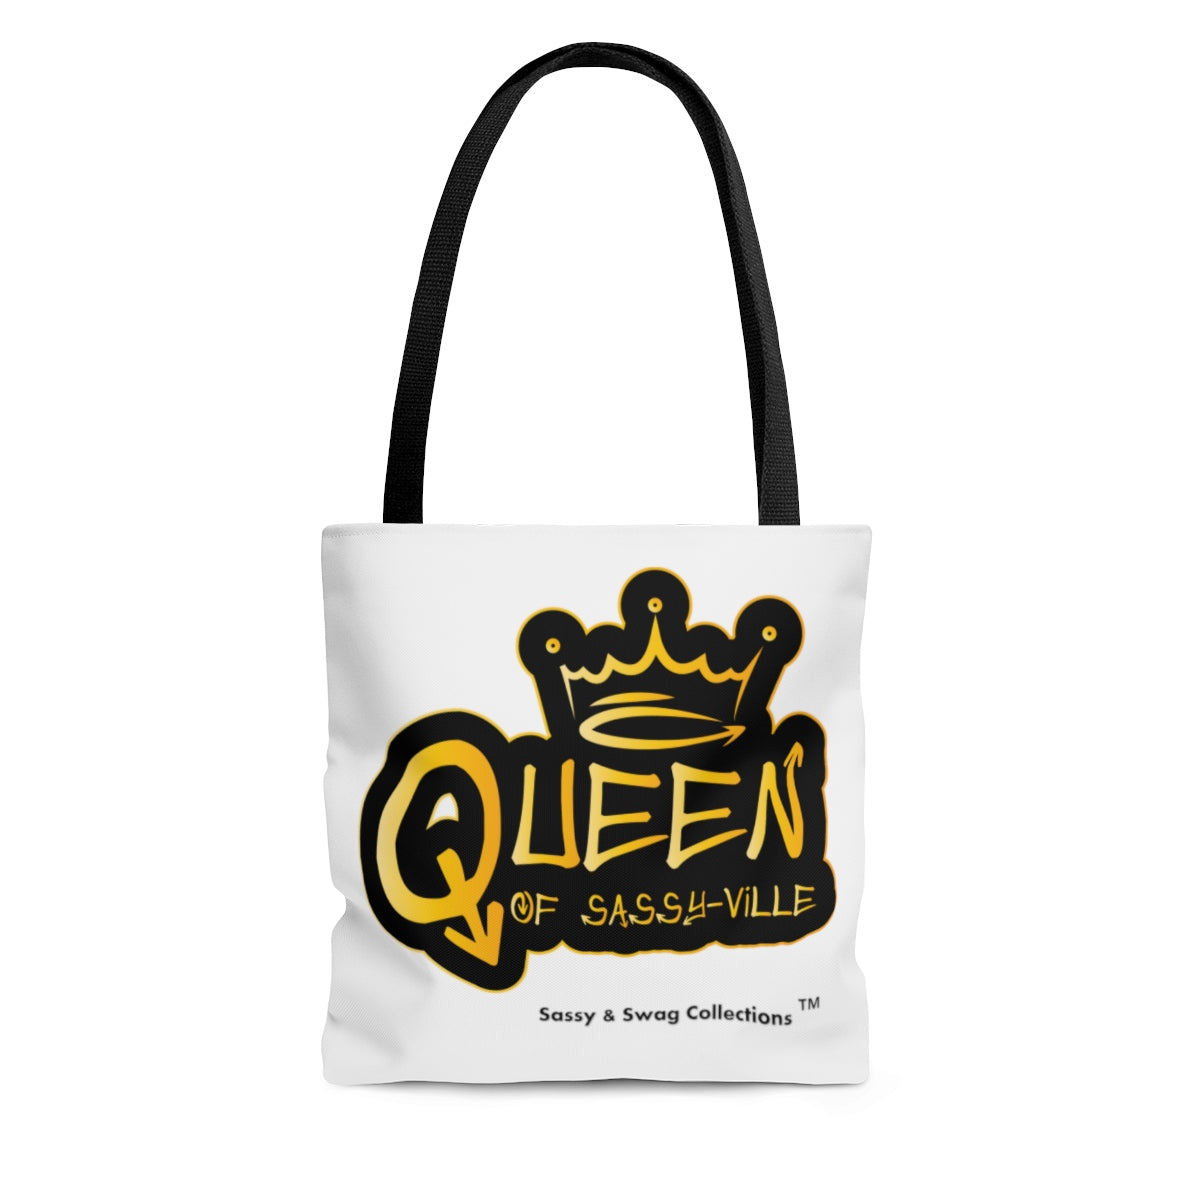 Sassy & Swag Collections - Queen of Sassy-Ville AOP Tote Bag